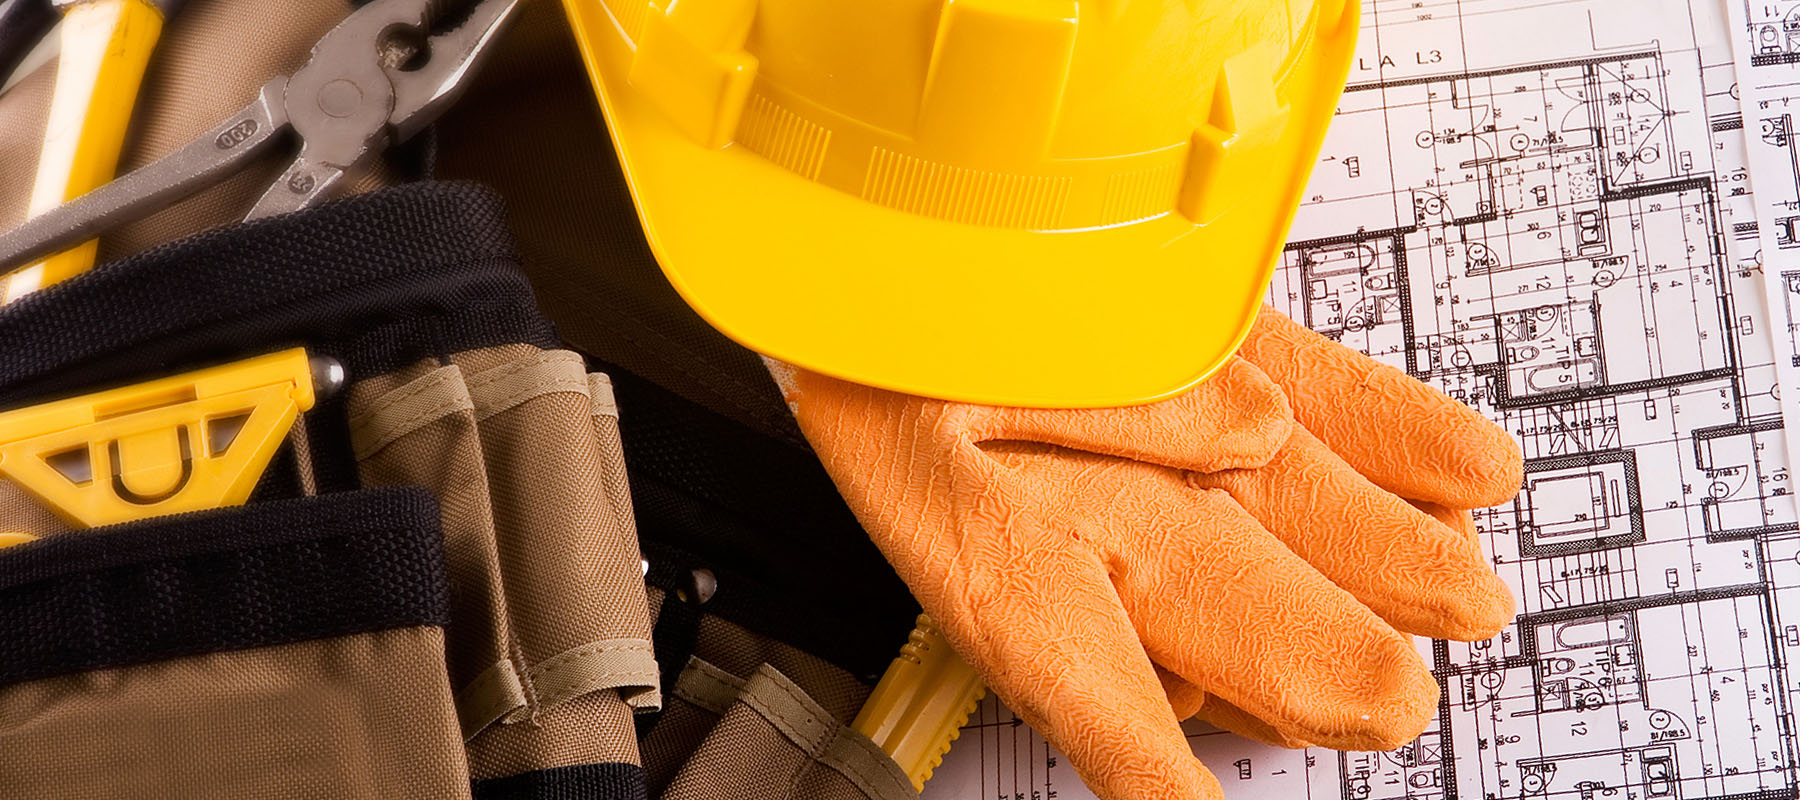 yellow hard hat, work gloves and tool belt next to building plans